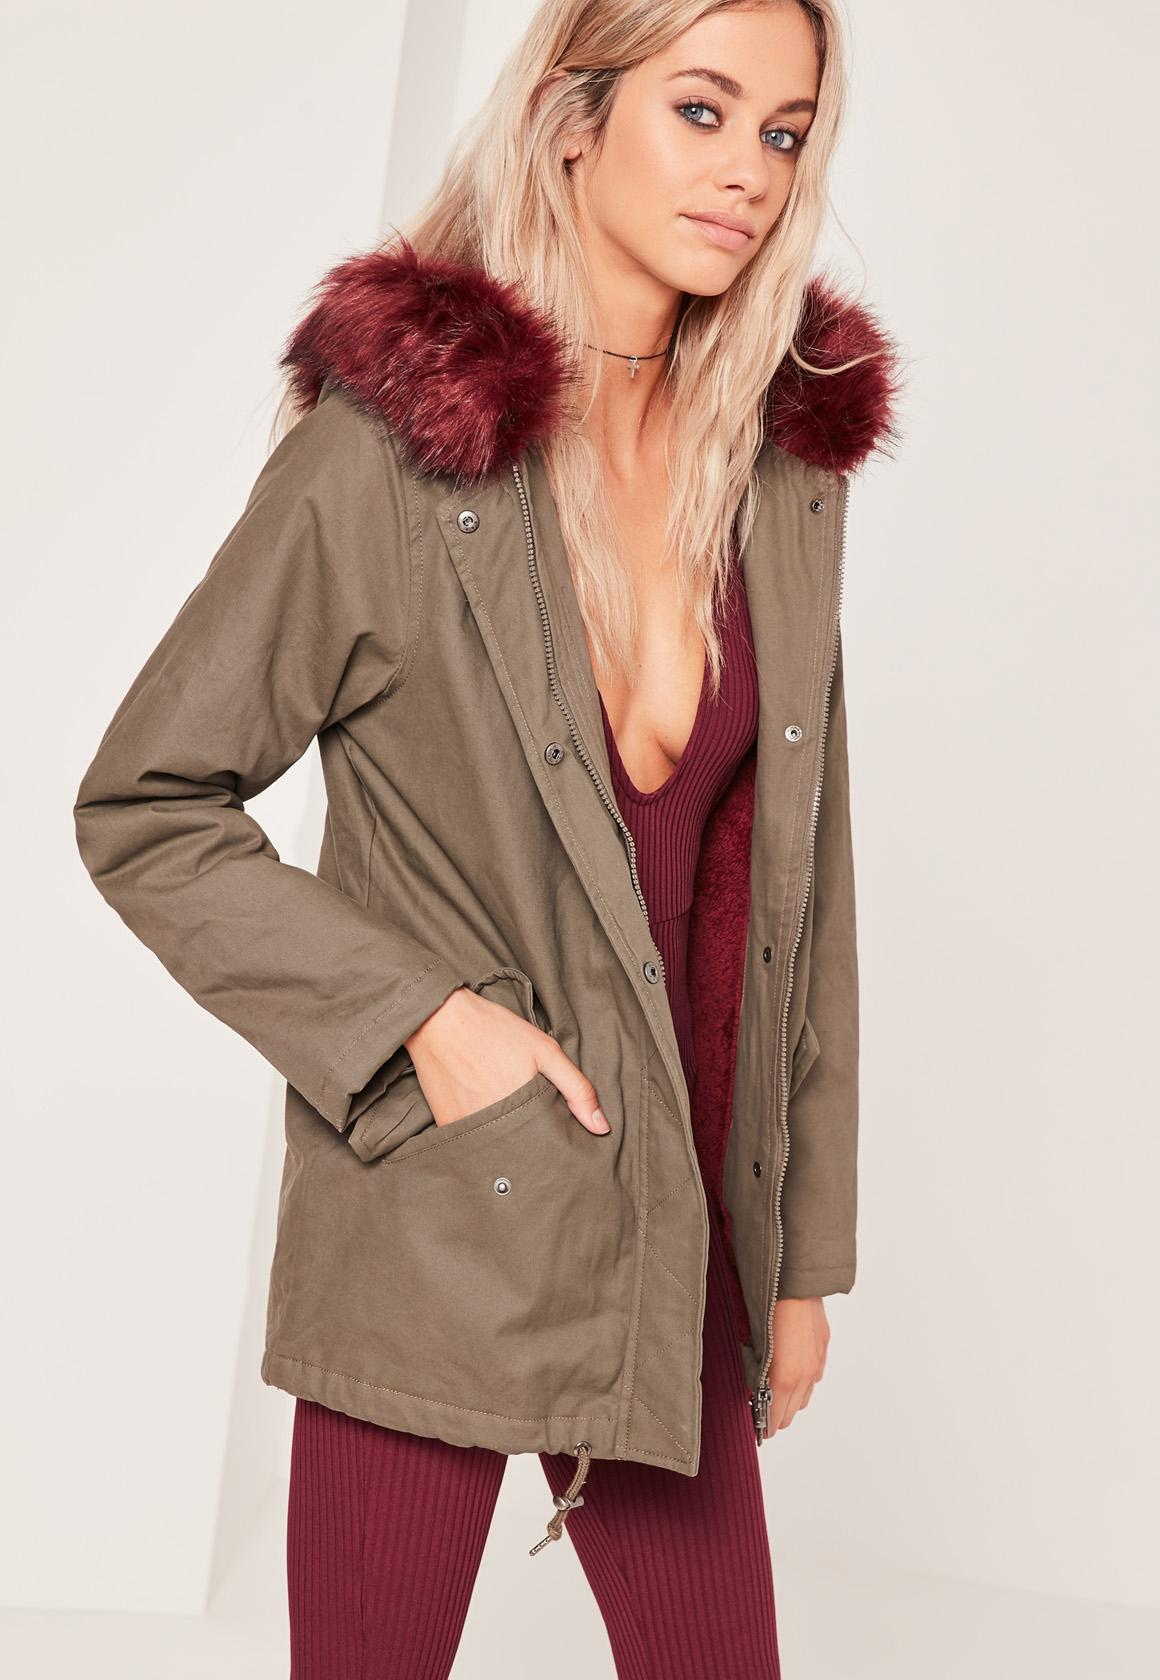 Contrast Faux Fur Lined Parka Jacket Khaki | Missguided